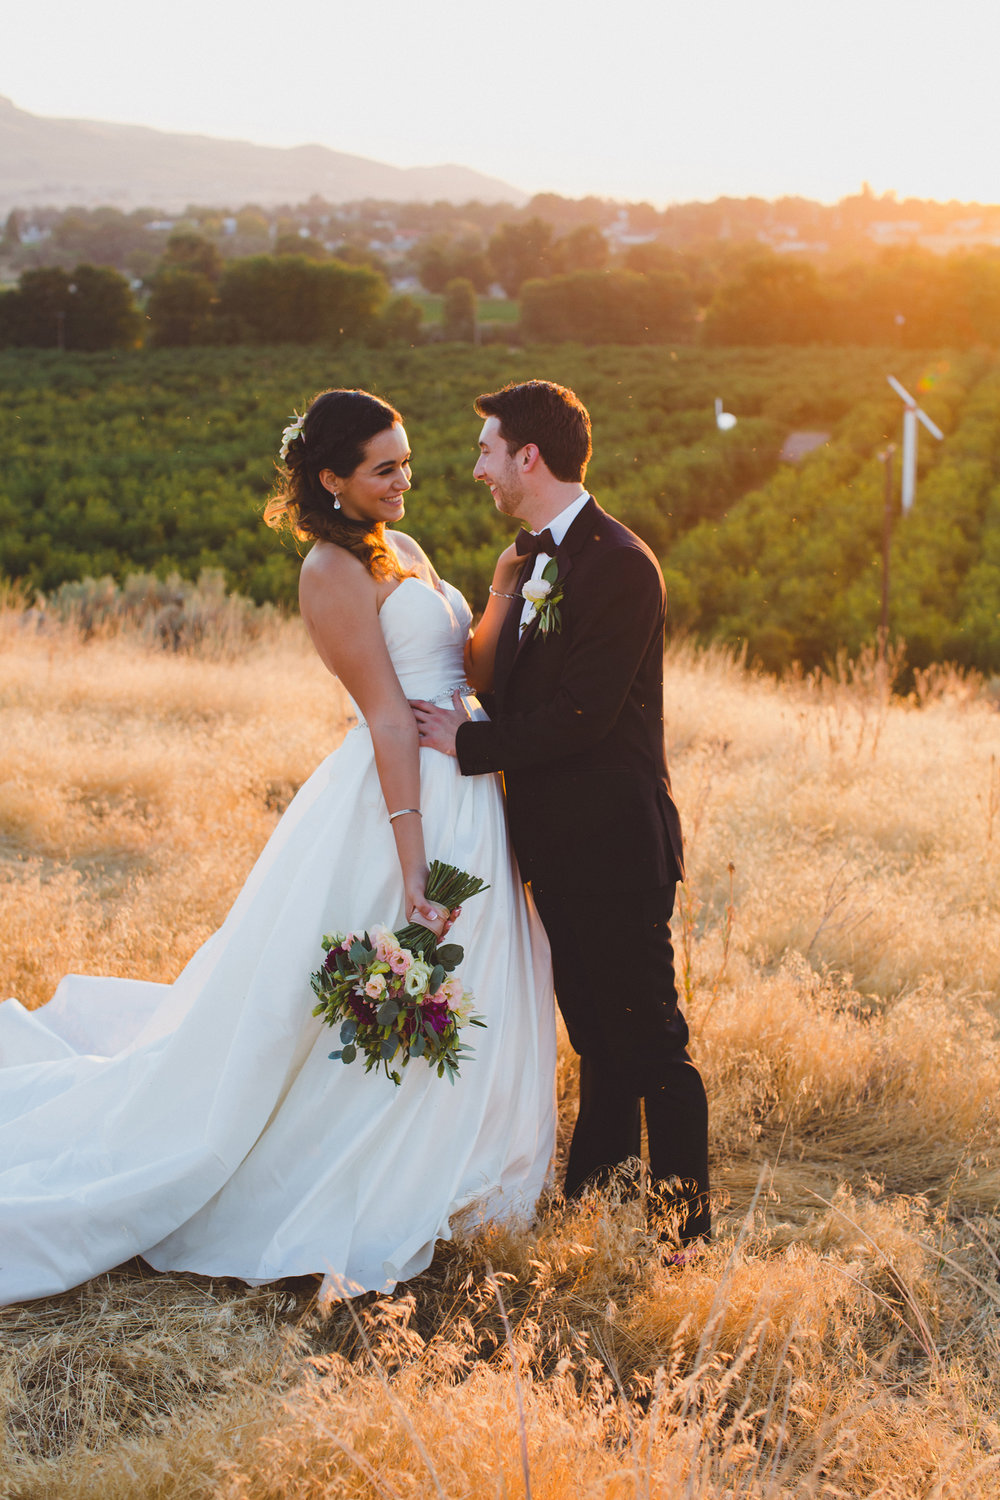 Jordan Edens Photography_Tri cities photographer_wedding photographer_bridal photographer_antoinehala_1.jpg